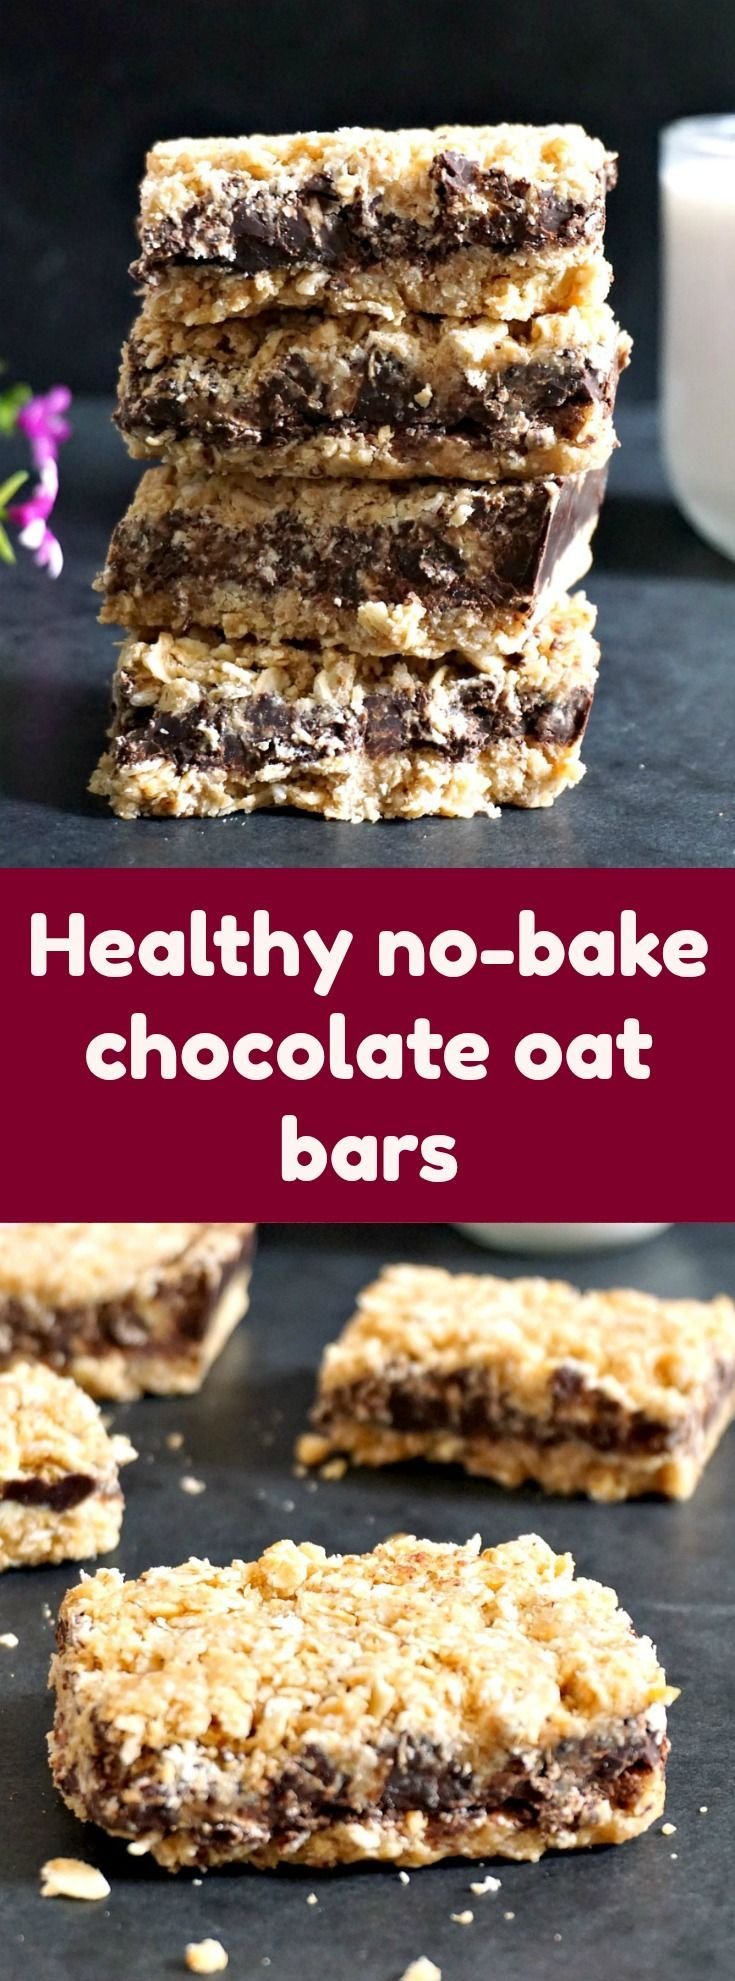 Healthy no-bake chocolate oat bars with peanut butter and apple sauce, a quick and guilt-free snack to boost your energy whenever your sweet tooth craves some sugar. Vegan and gluten free, only 4 ingredients is all it takes, and l promise you these cereal bars are way better than any store-bought so-called healthy cereal bars. No need to turn the oven on either, they are ready in no time. #nobakechocolateoatbars, #chocolateoatbars, #energybars , #veganbars, #healthysnacks